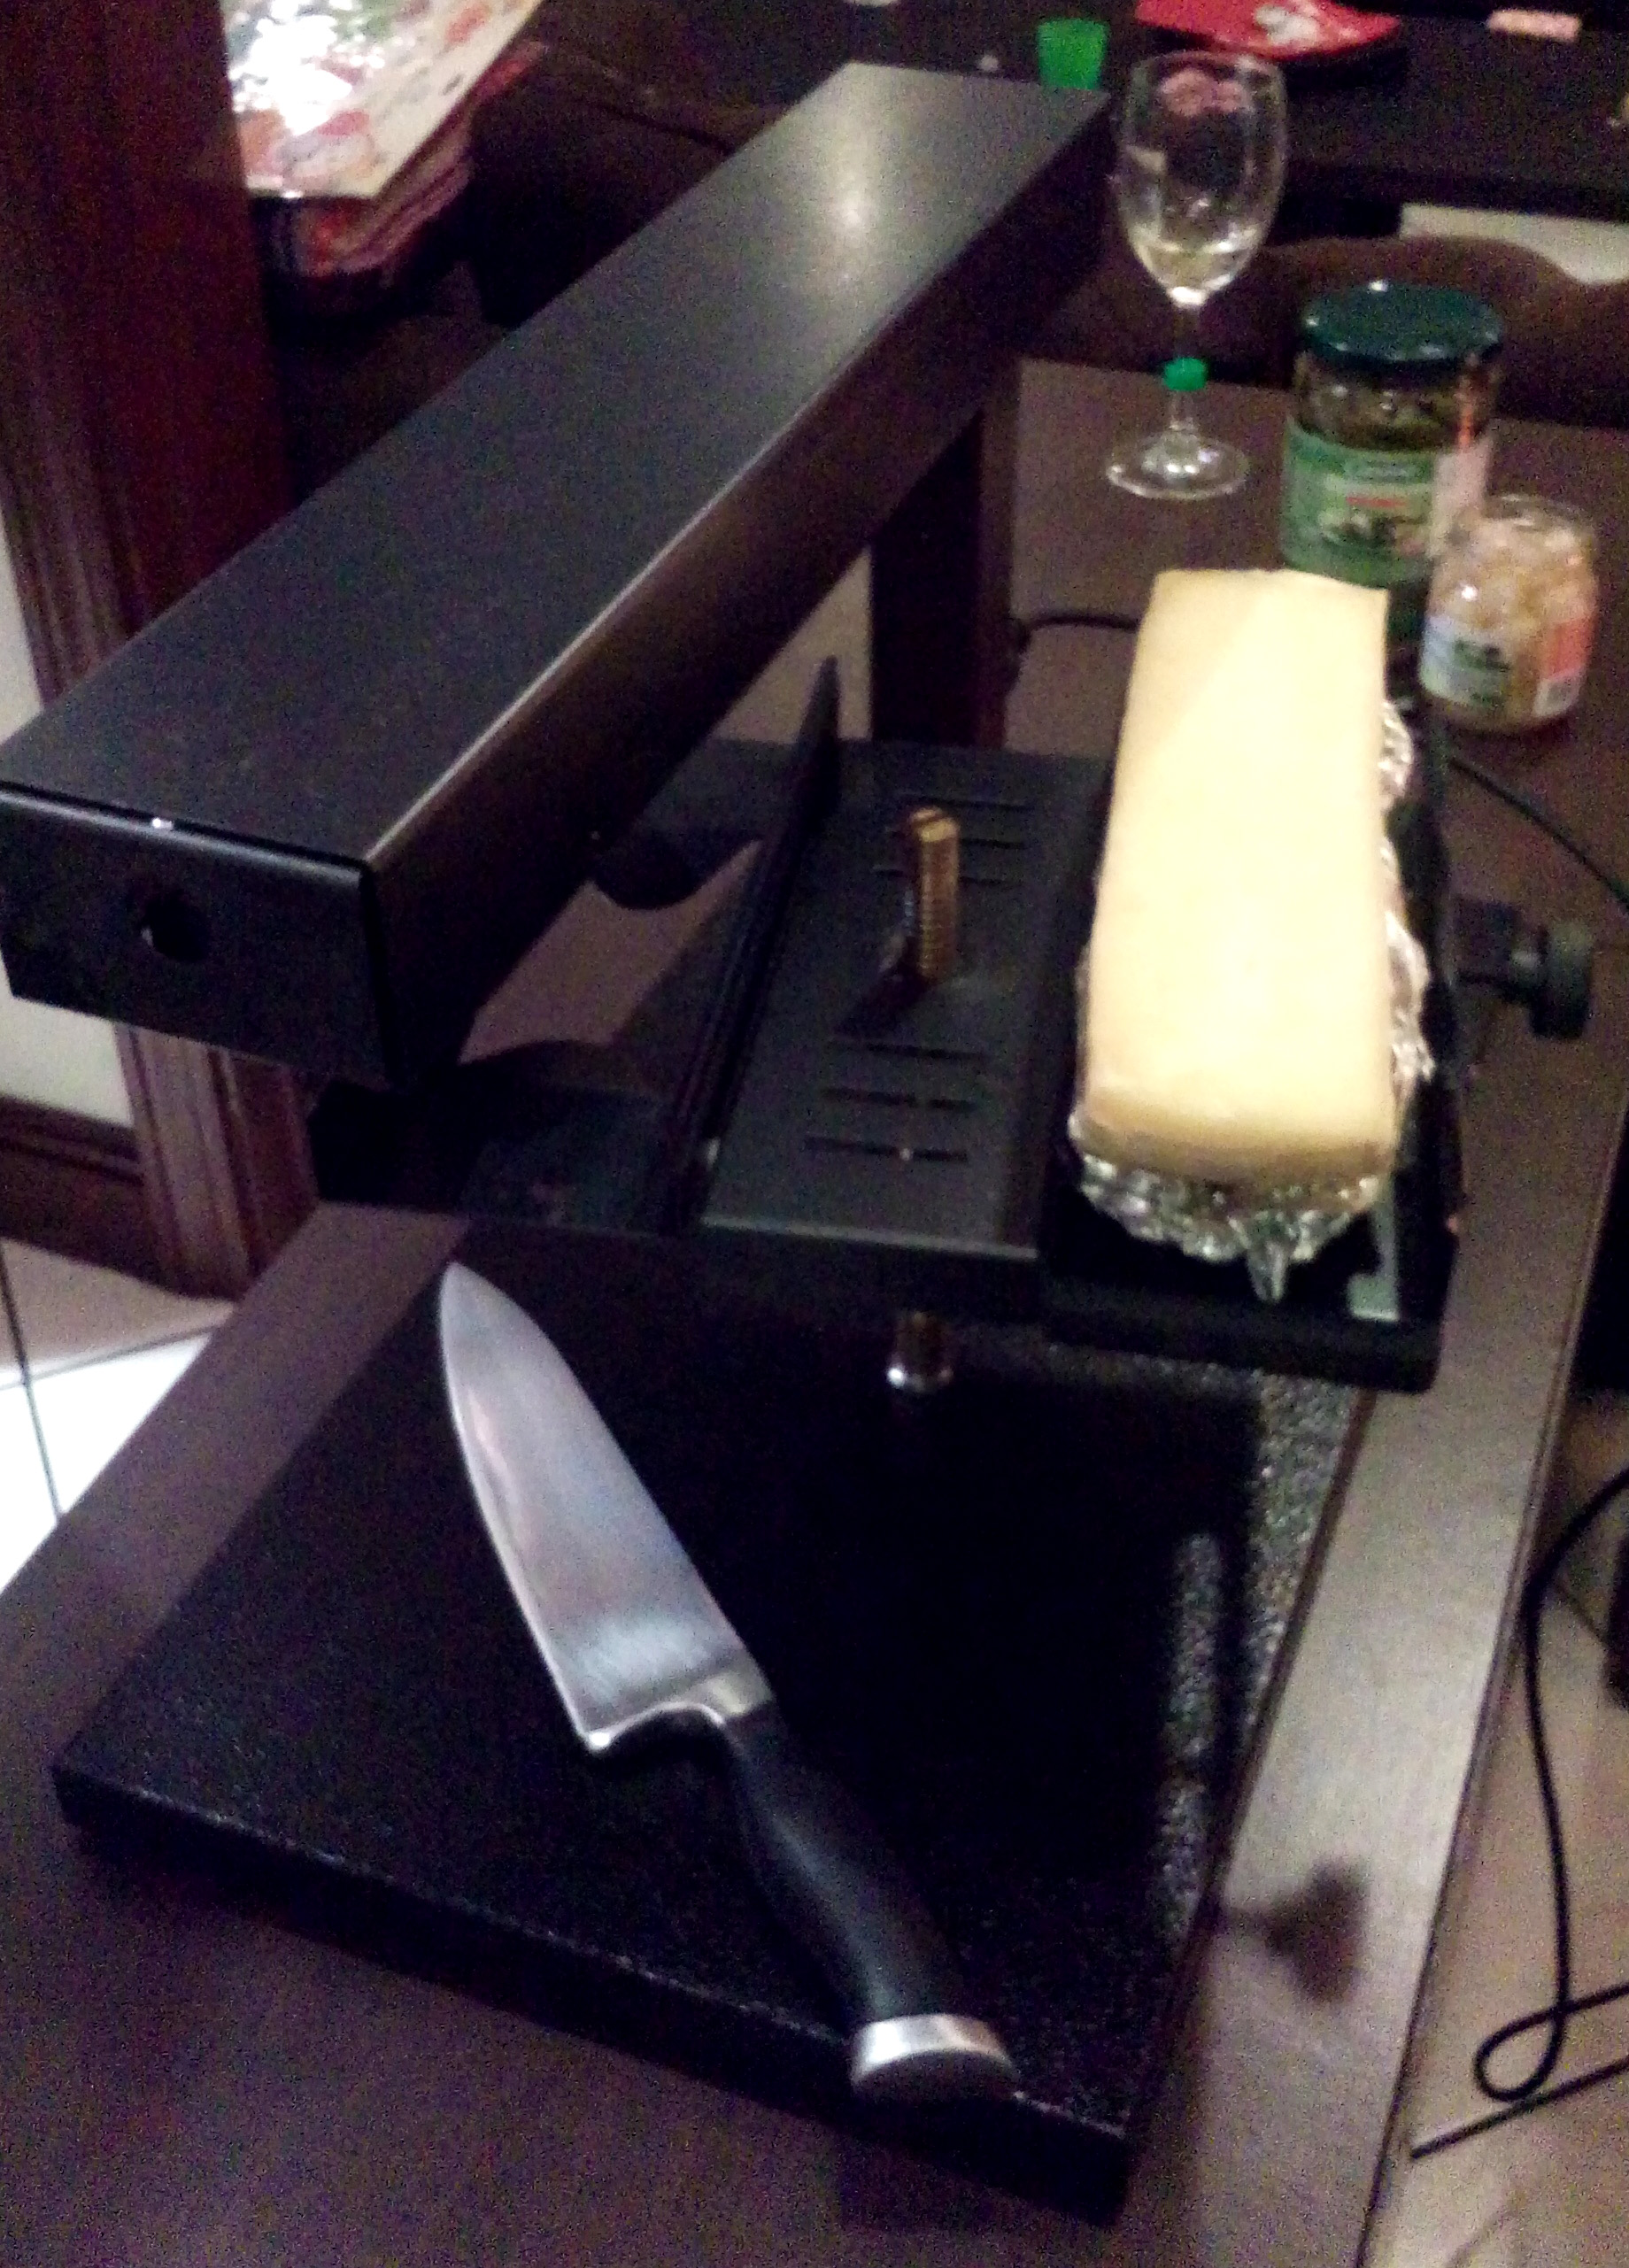 The raclette grill